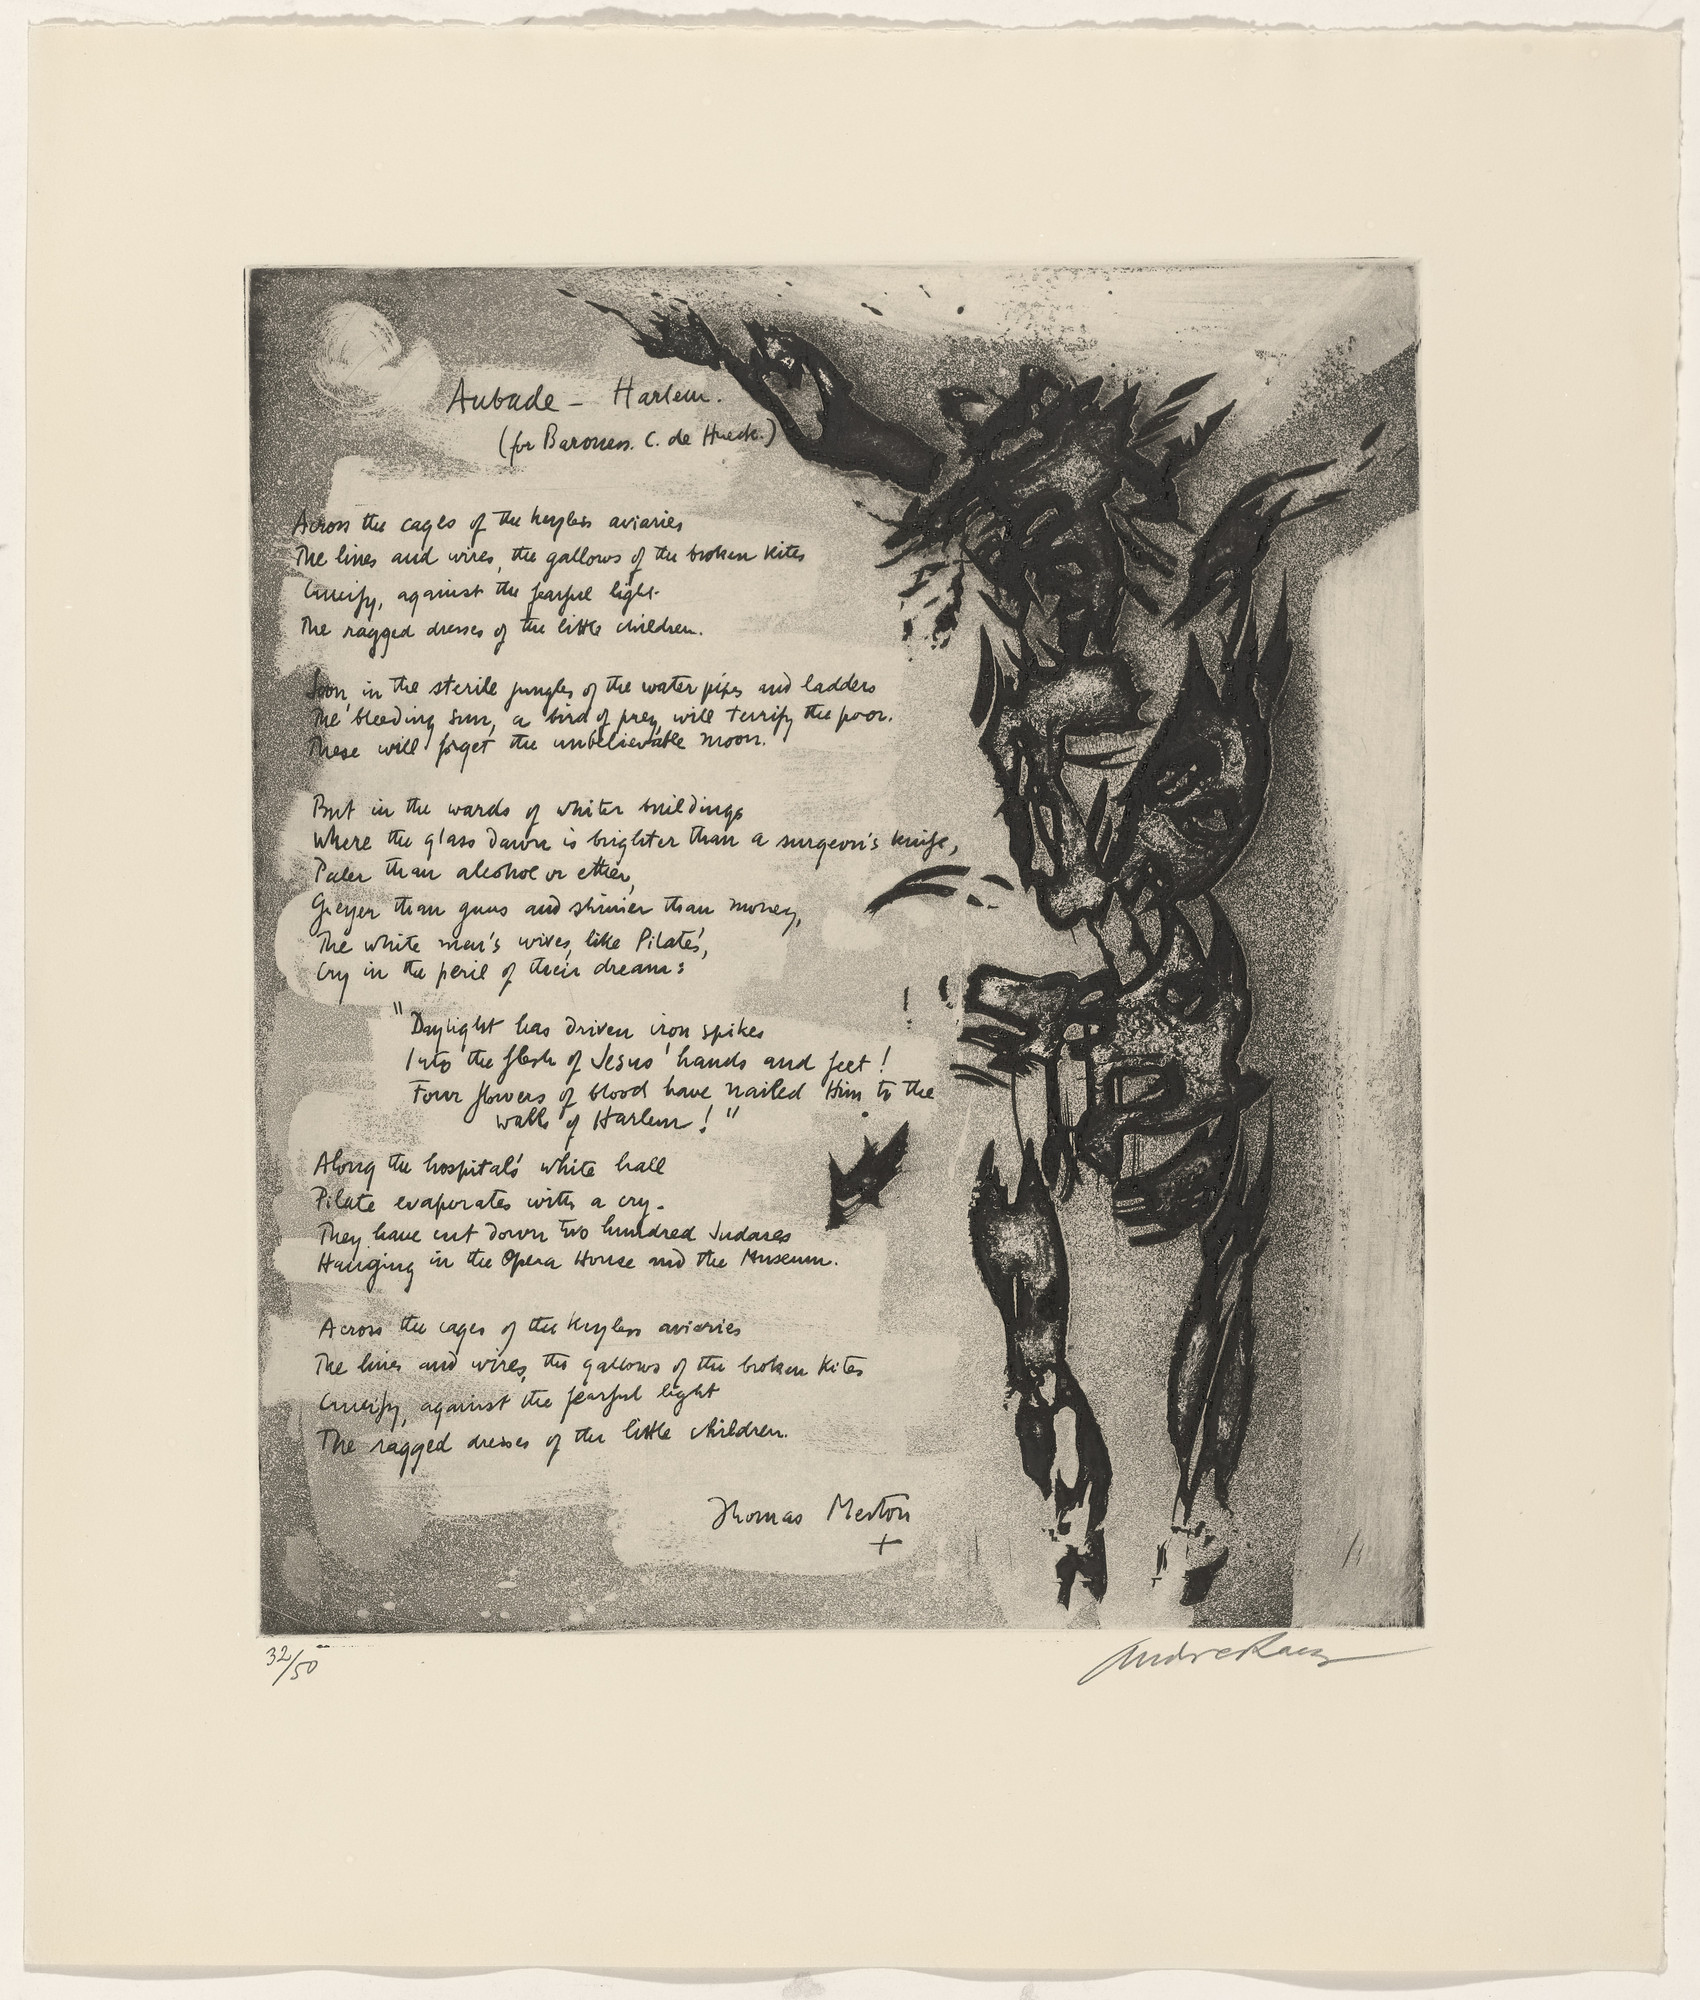 André Racz, Thomas Merton. In-text plate (folio 18) from 21 Etchings and Poems. 1960